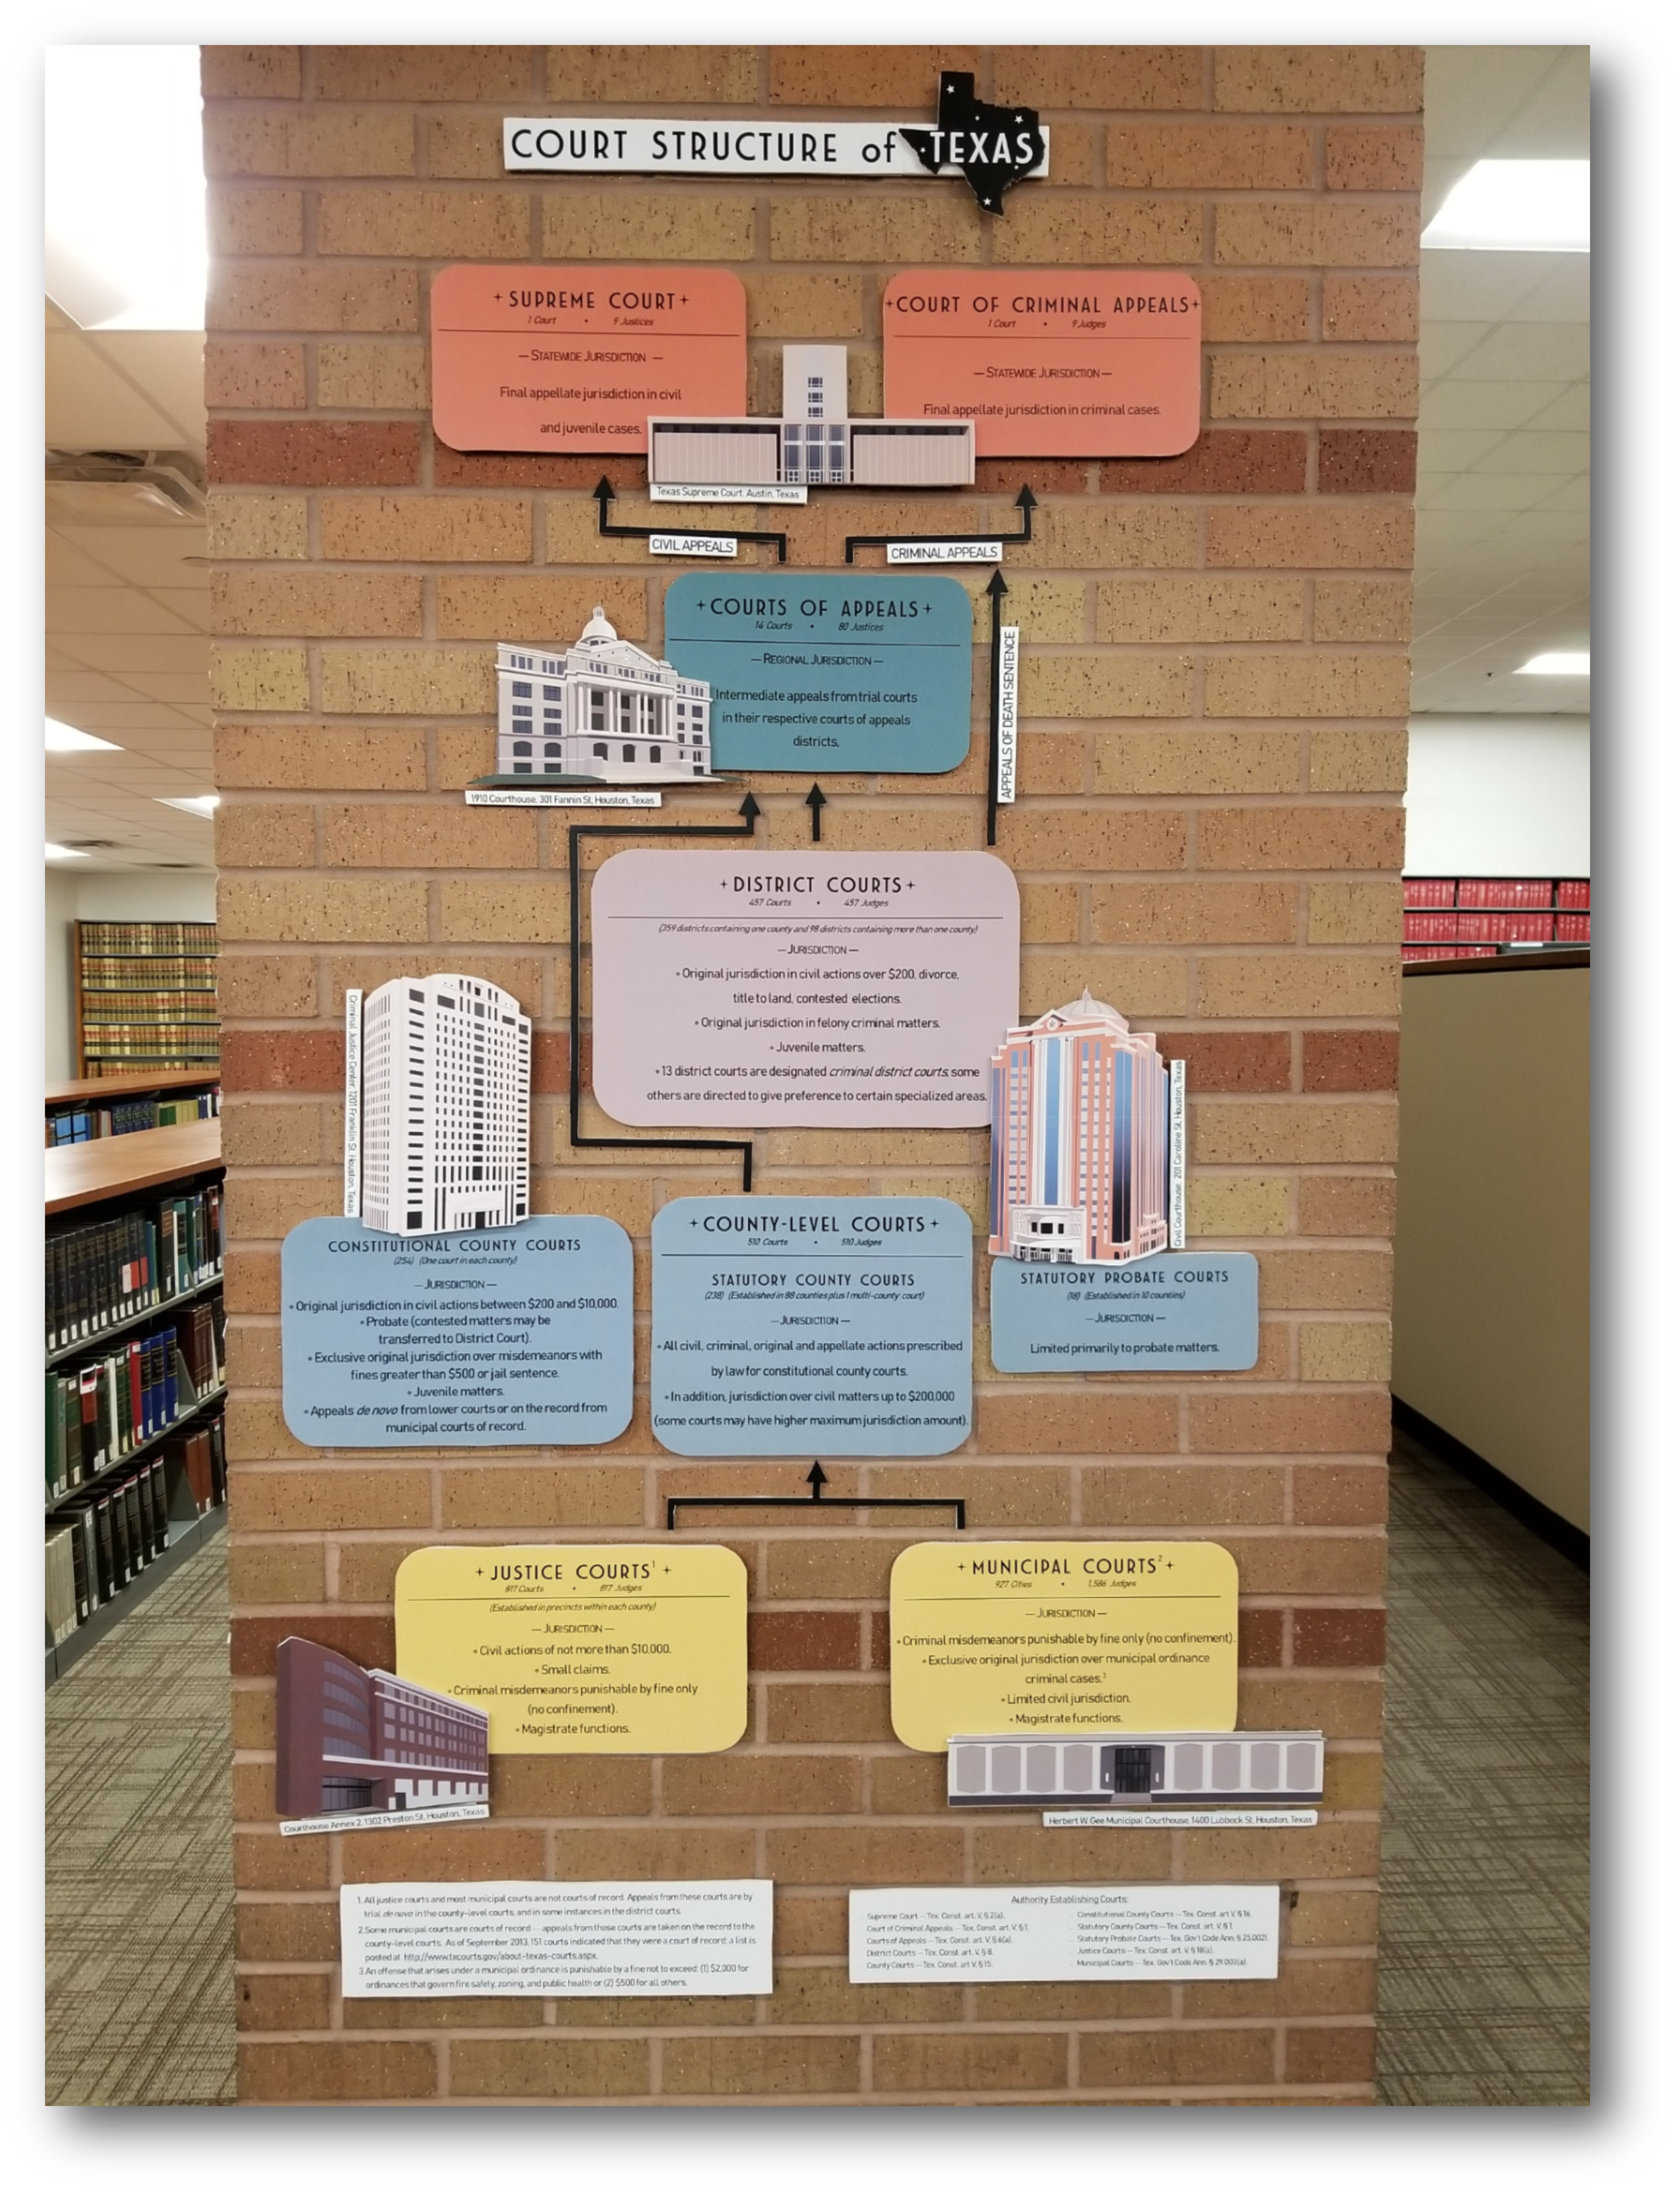 Court Structure of Texas - permanent exhibit at the Harris County Law Library